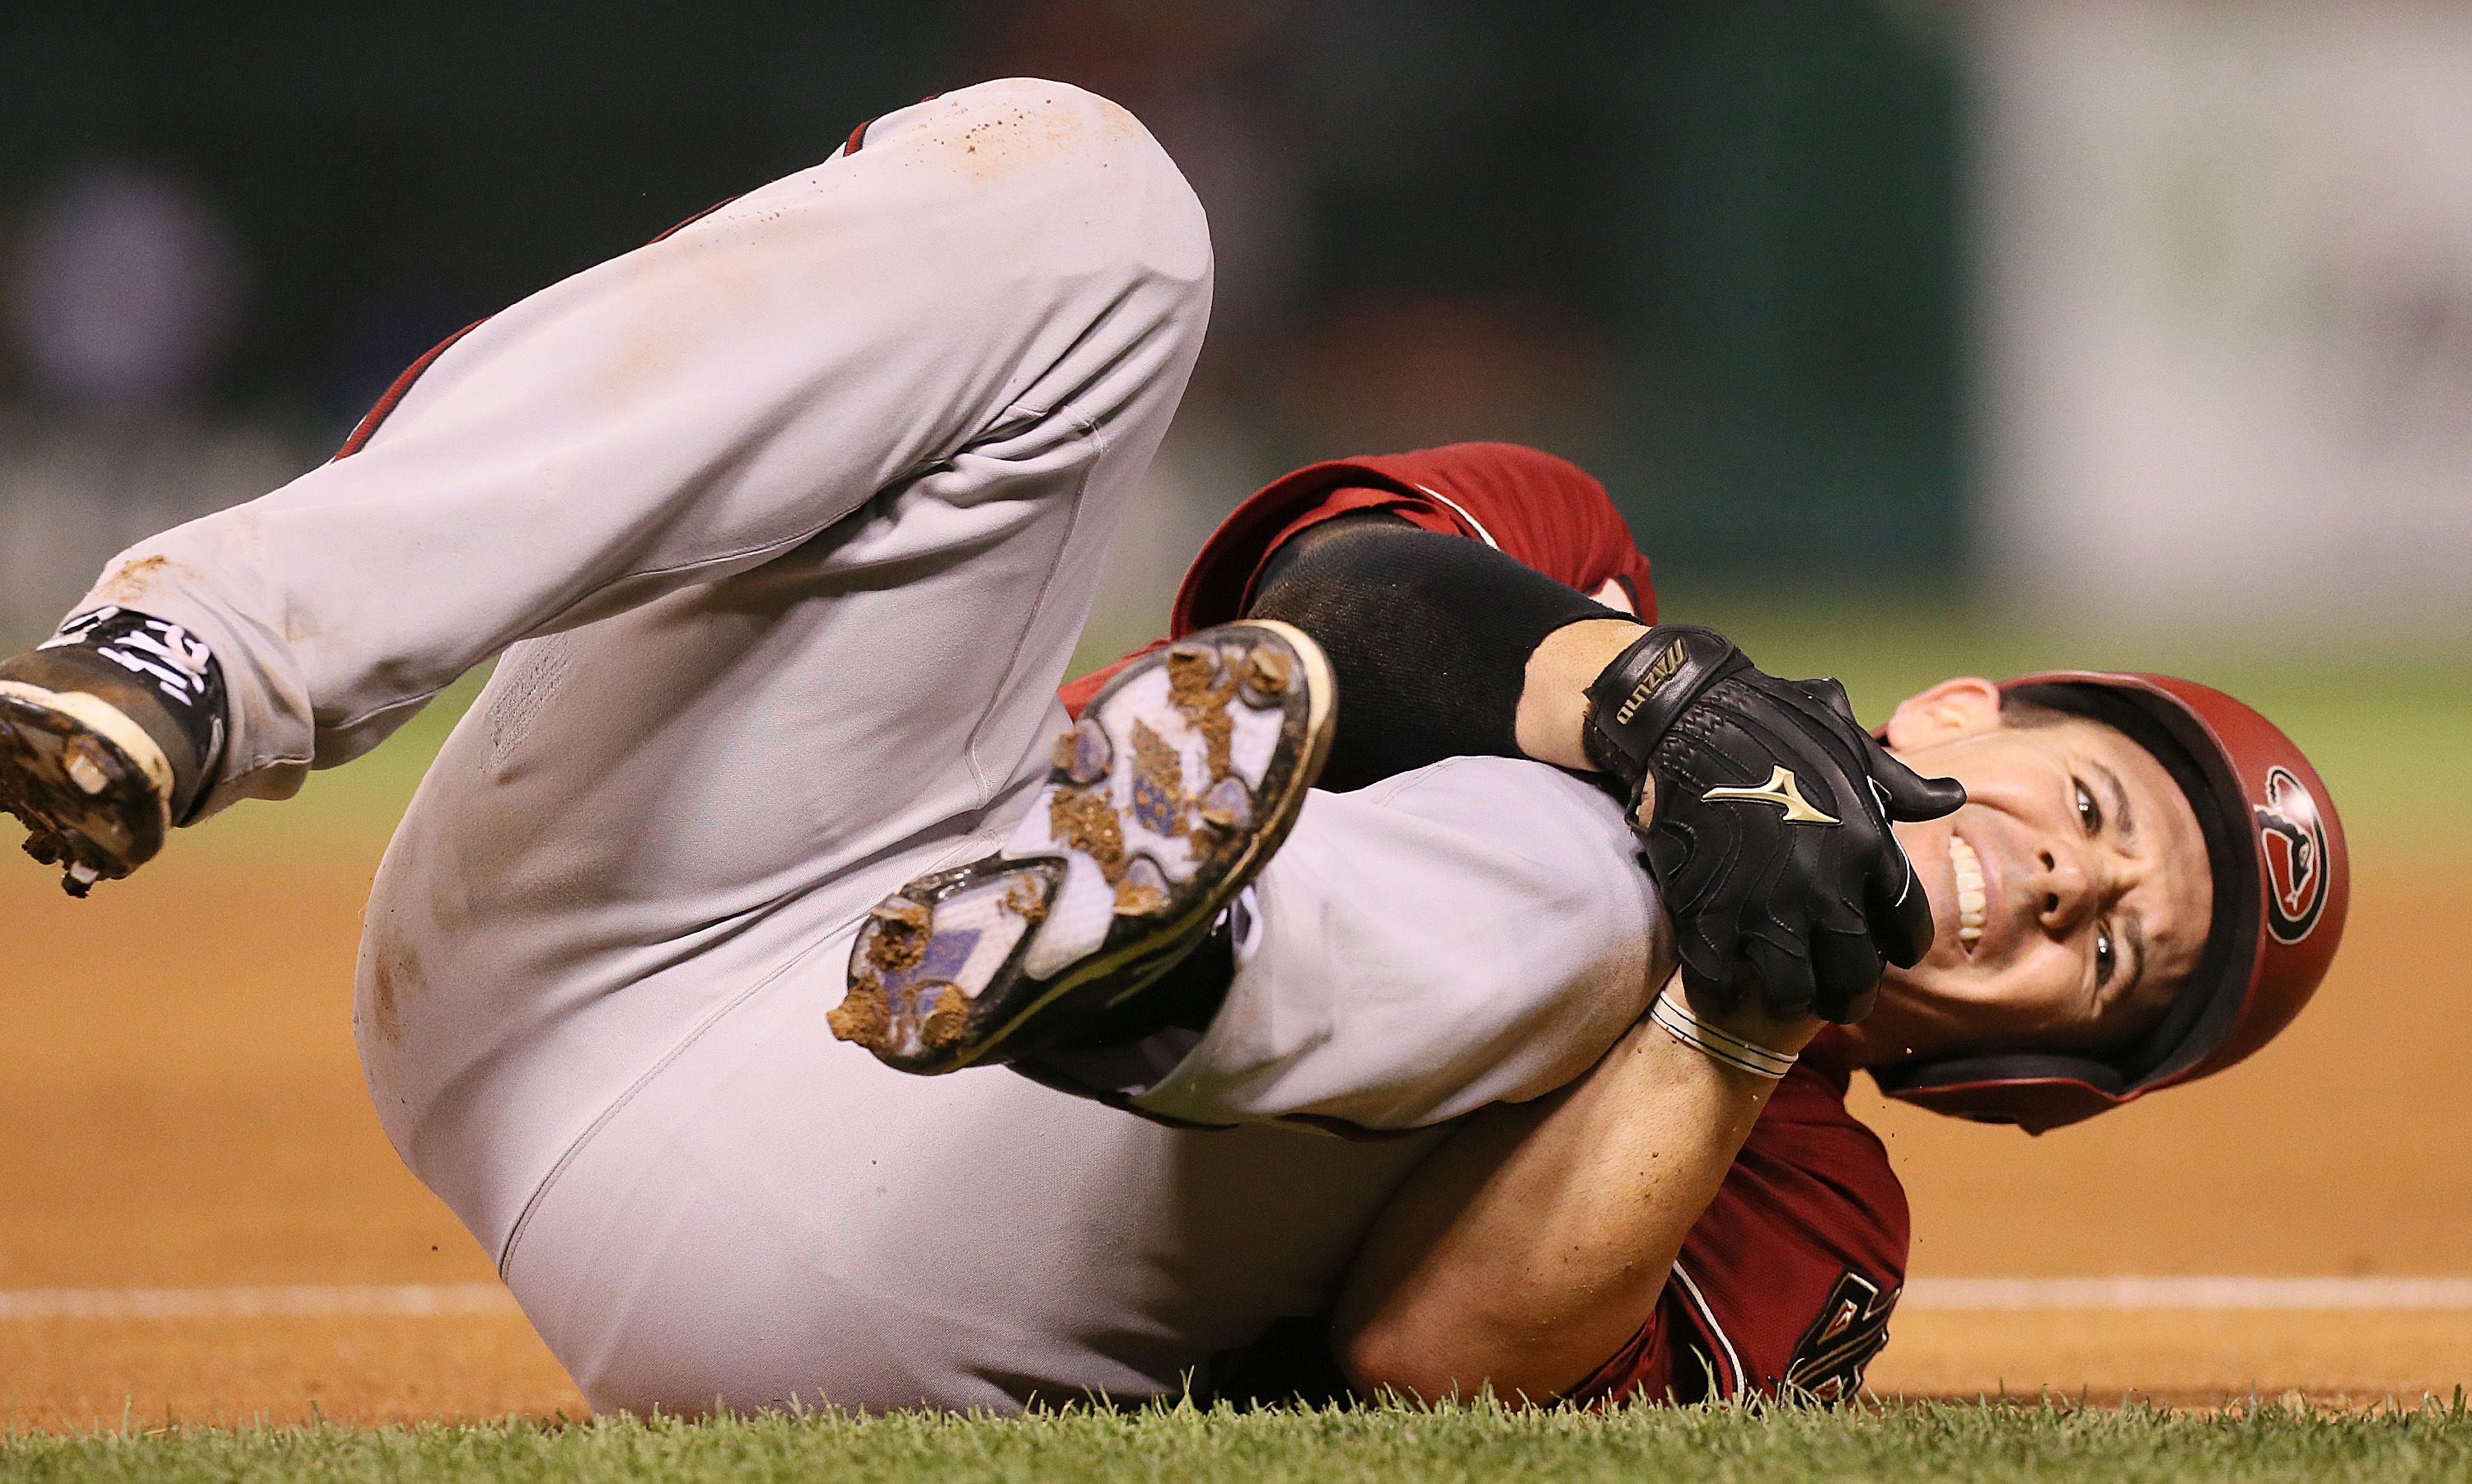 Arizona Diamondbacks' Tuffy Gosewisch clutches his left knee after being injured running out a ground out in sixth inning action during a game between the St. Louis Cardinals and the Arizona Diamondbacks on Wednesday, May 27, 2015, at Busch Stadium in St.